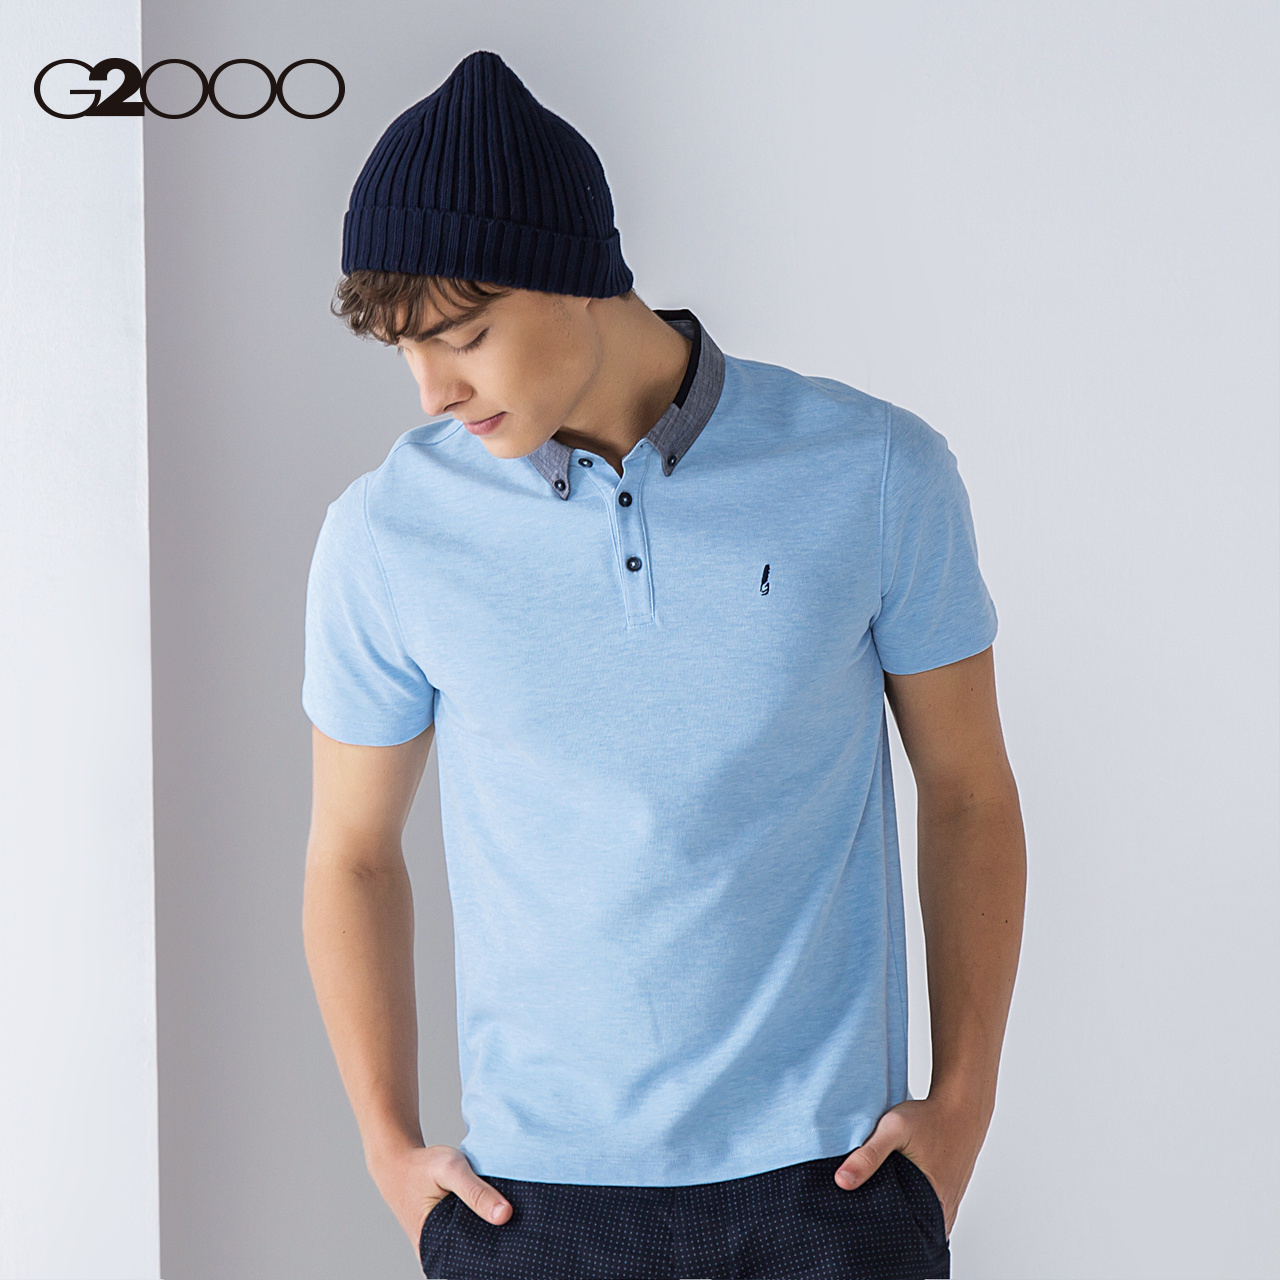 Usd 8031 G2000 Short Sleeved T Shirt Male Lapel Business Polo